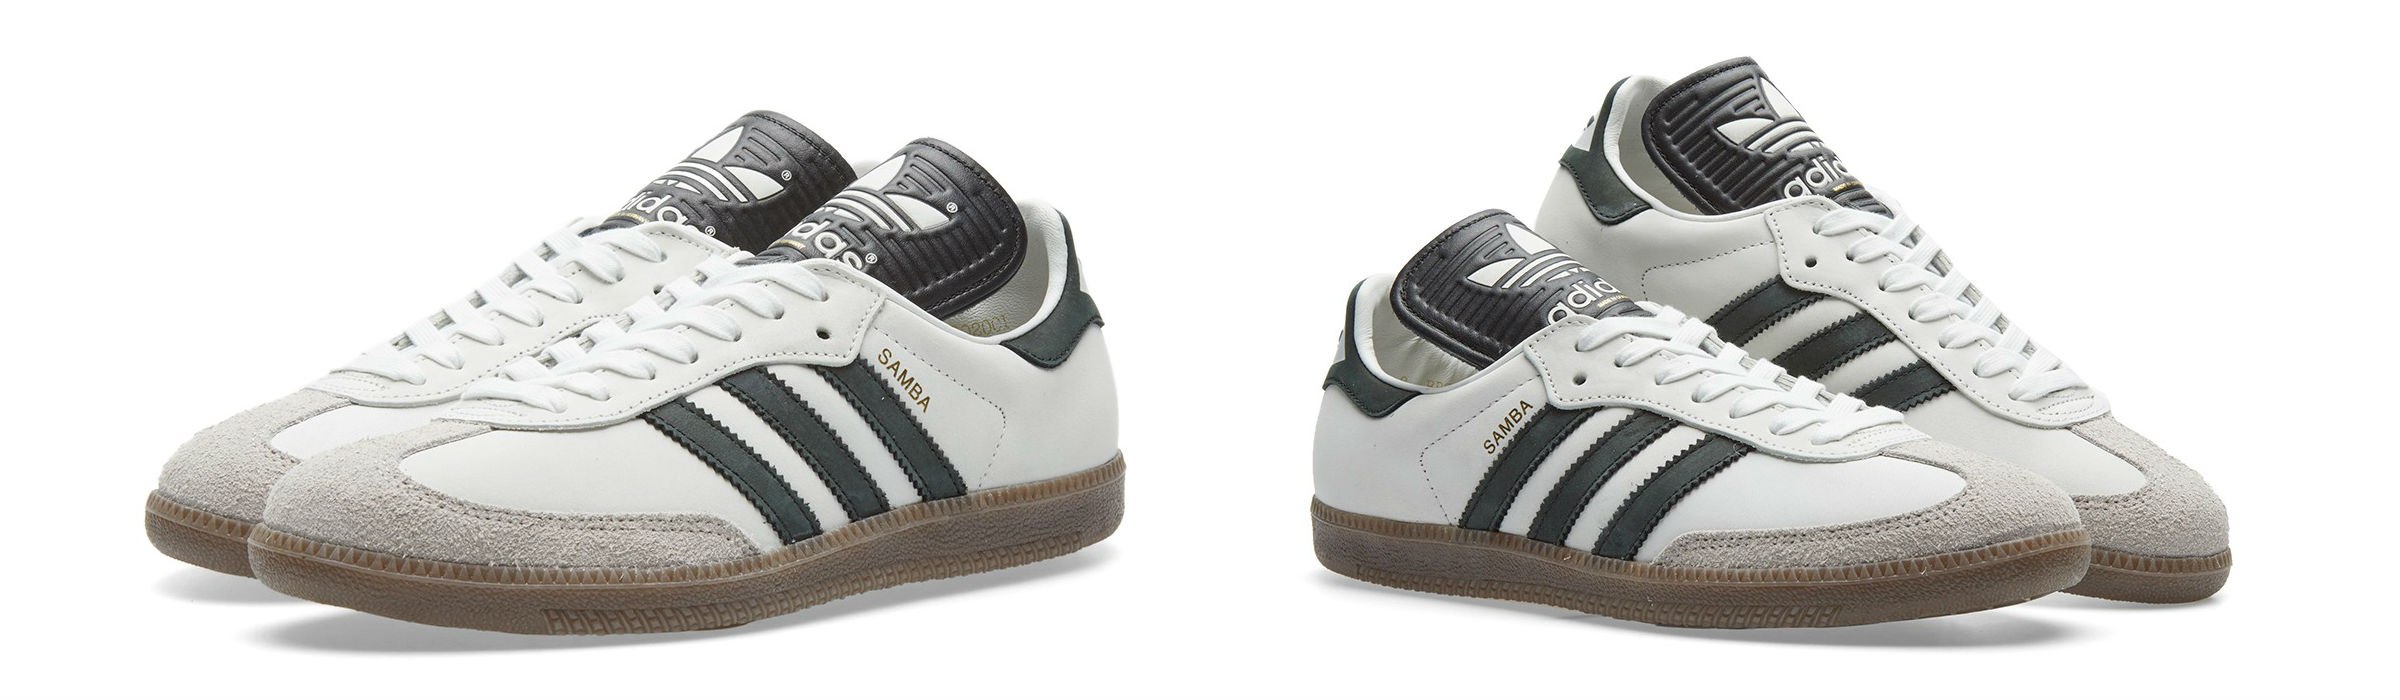 Adidas Samba Made In Germany Shoes Vintage White Core Black Gum Full